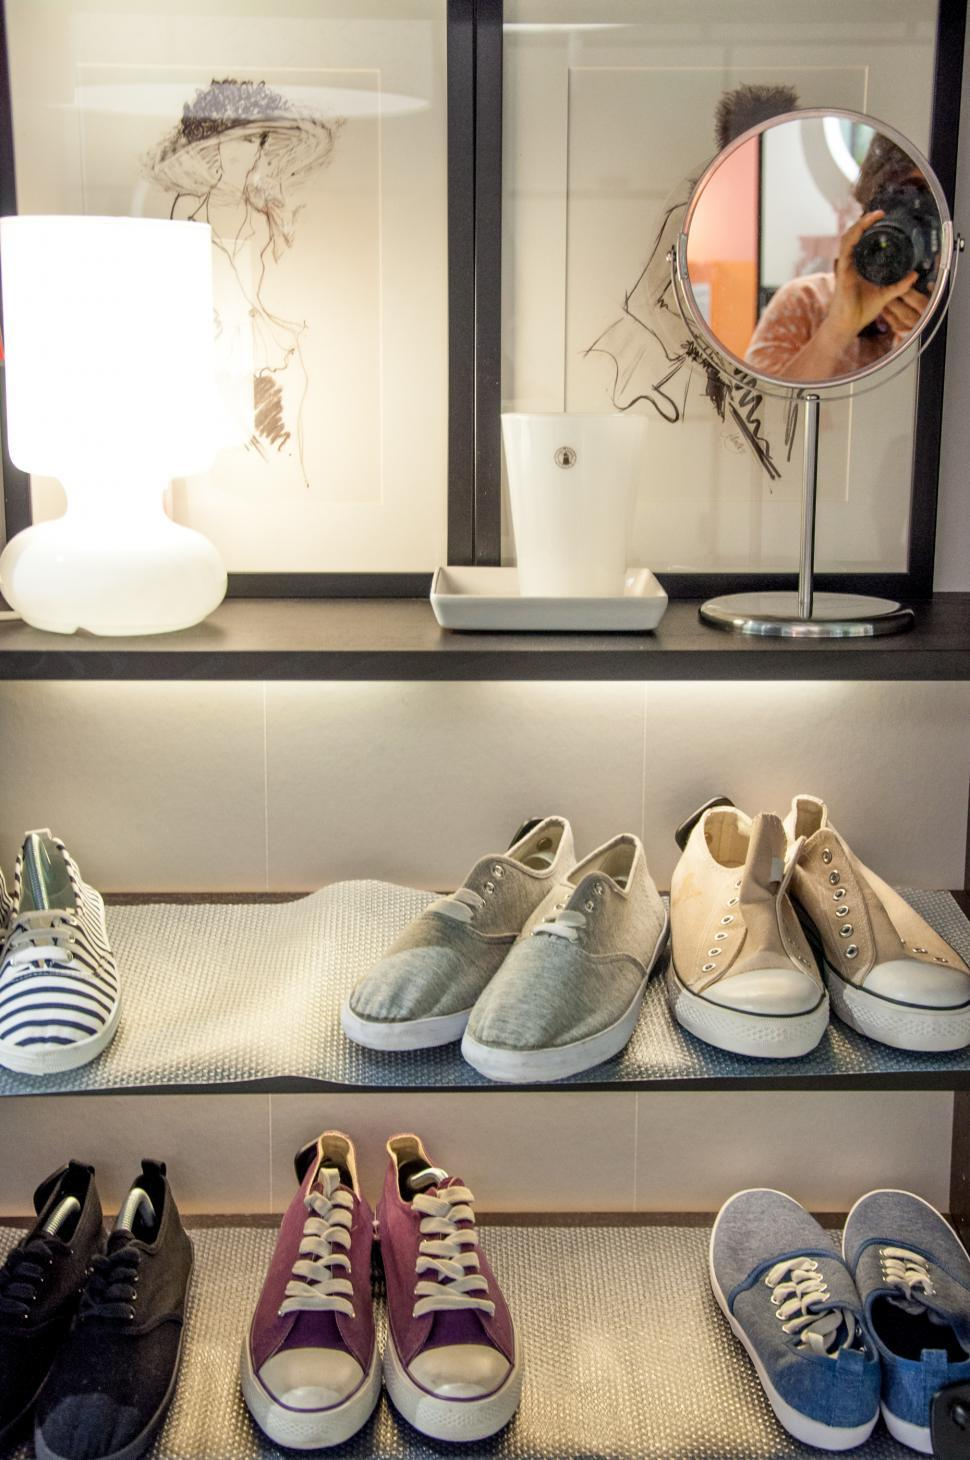 Download Free Stock HD Photo of closet with shoes Online